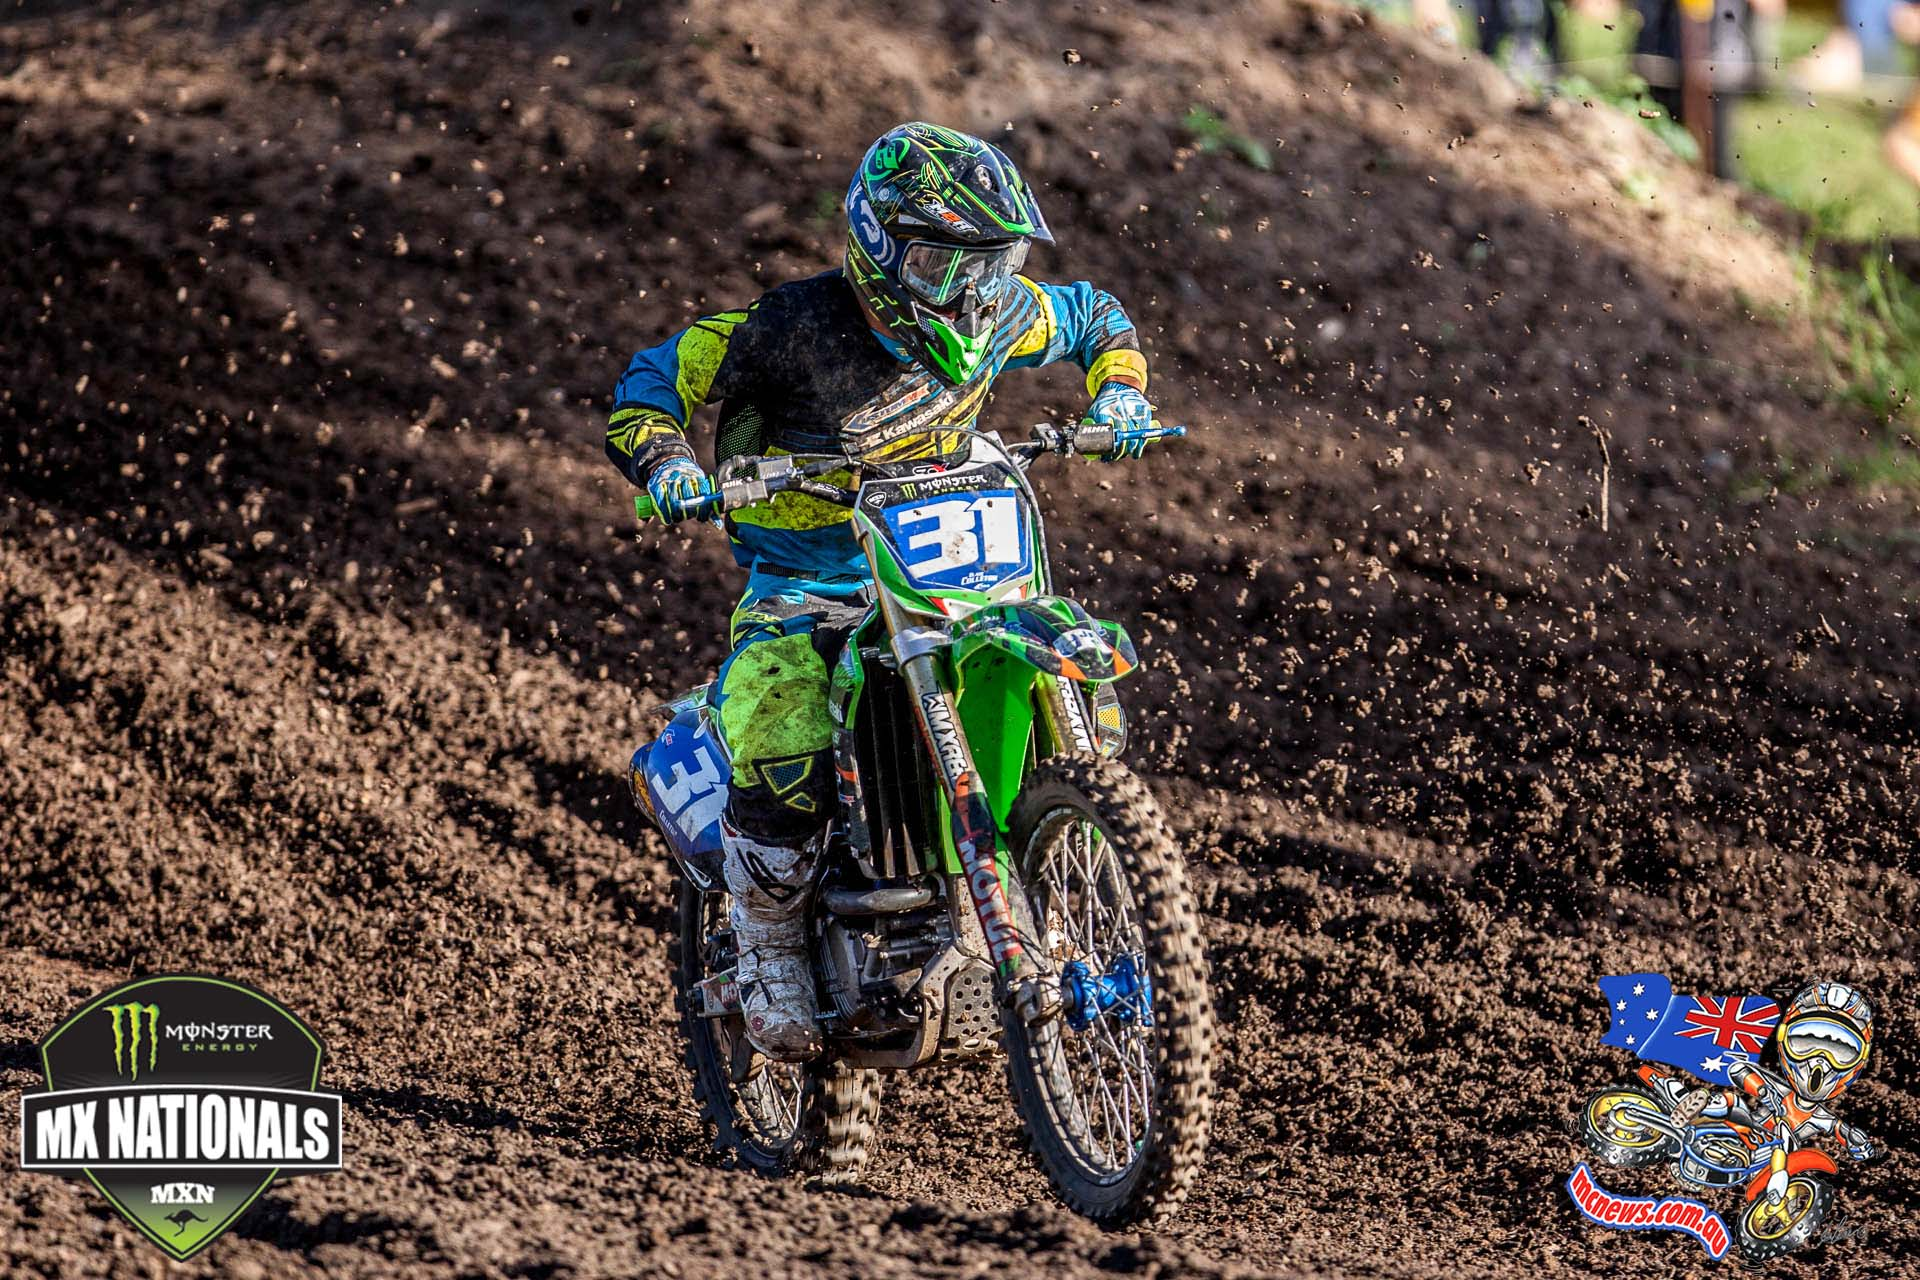 Blake Colleton - MX Nationals will be holding a fundraising dinner to assist with Blake's recovery at the eighth round of the series at Raymond Terrace.